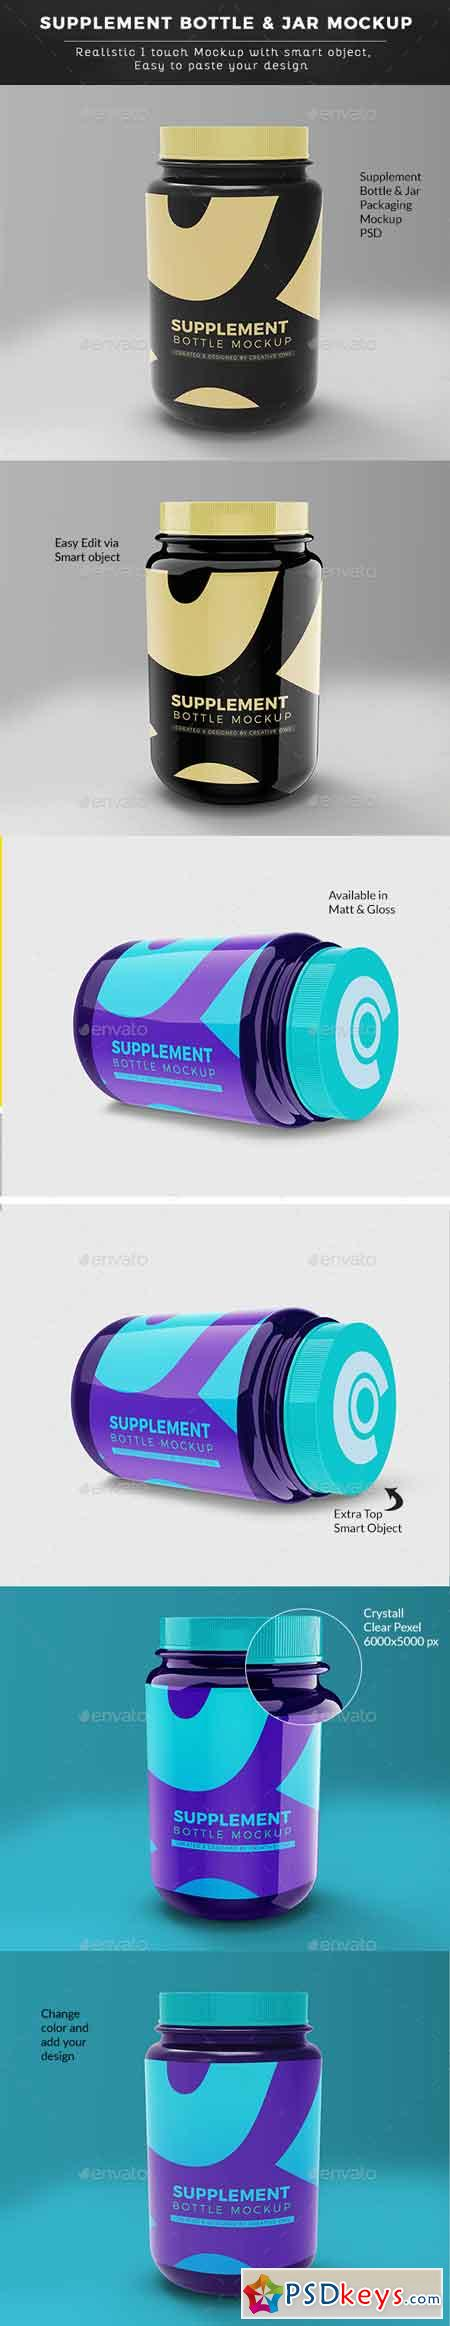 Supplement Bottle or Jar Mockup 22702581